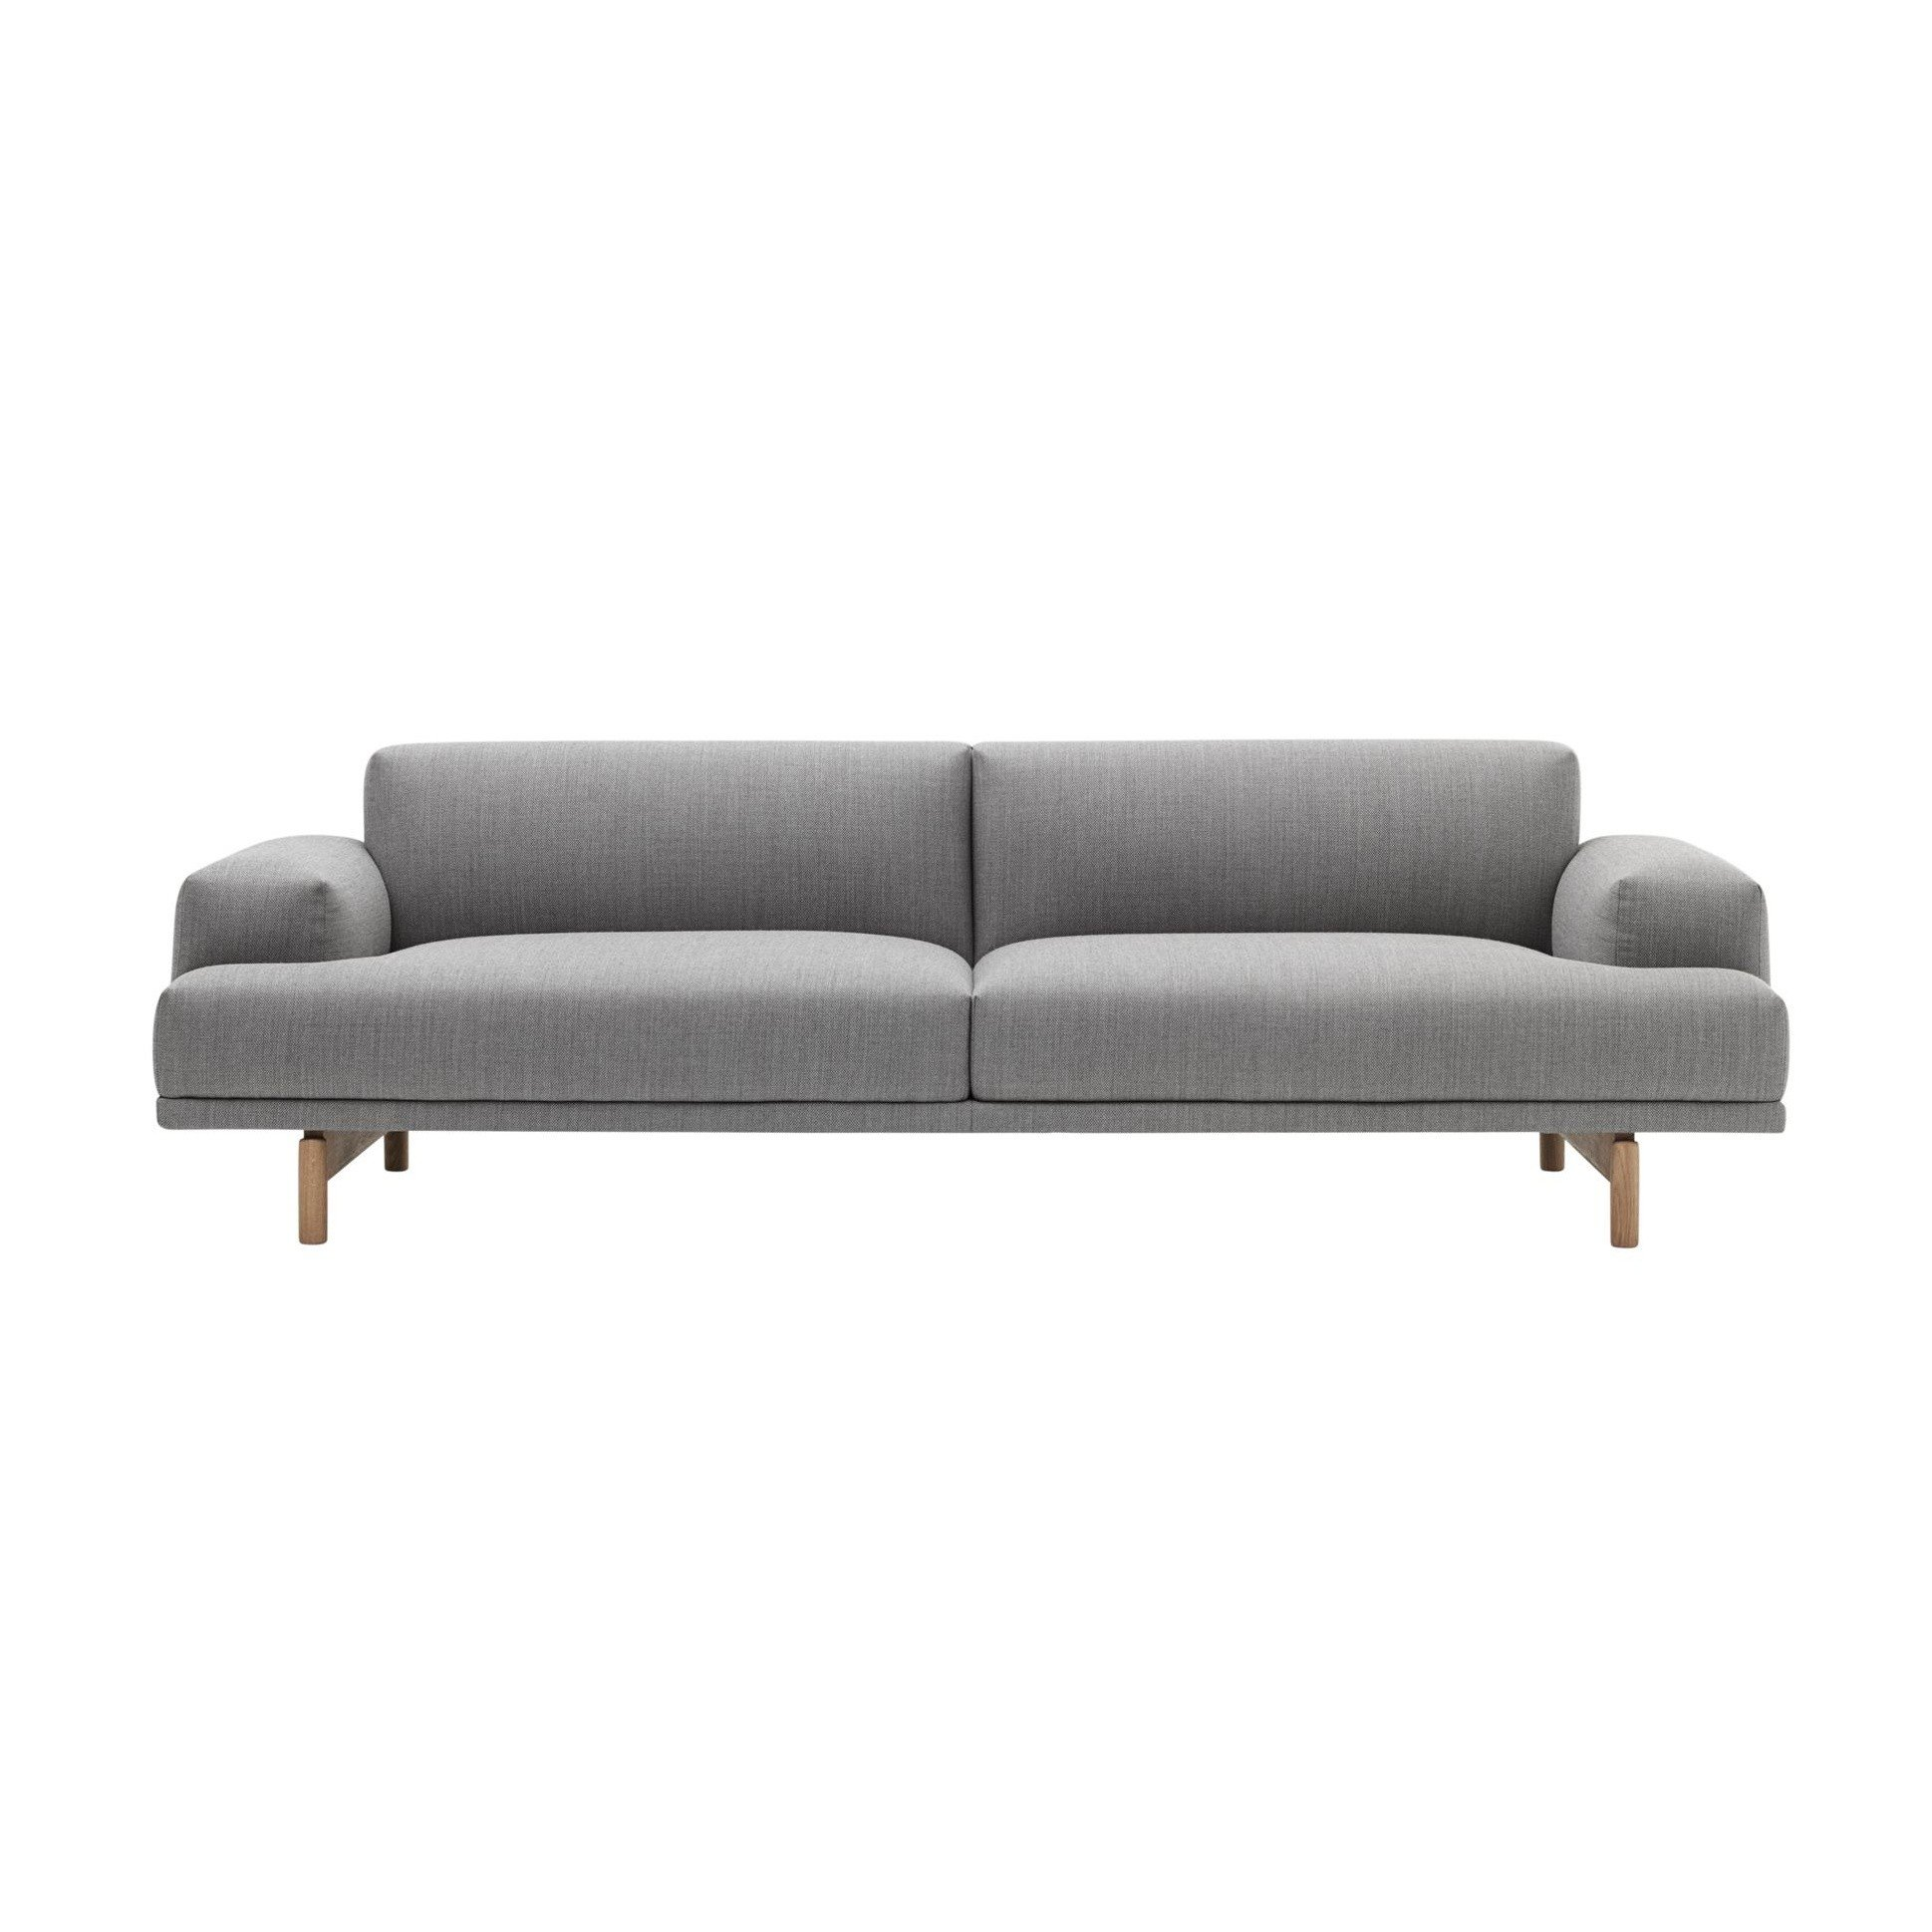 leon s sofa clearance sectional sleeper with chaise lounge bed vancouver brokeasshome